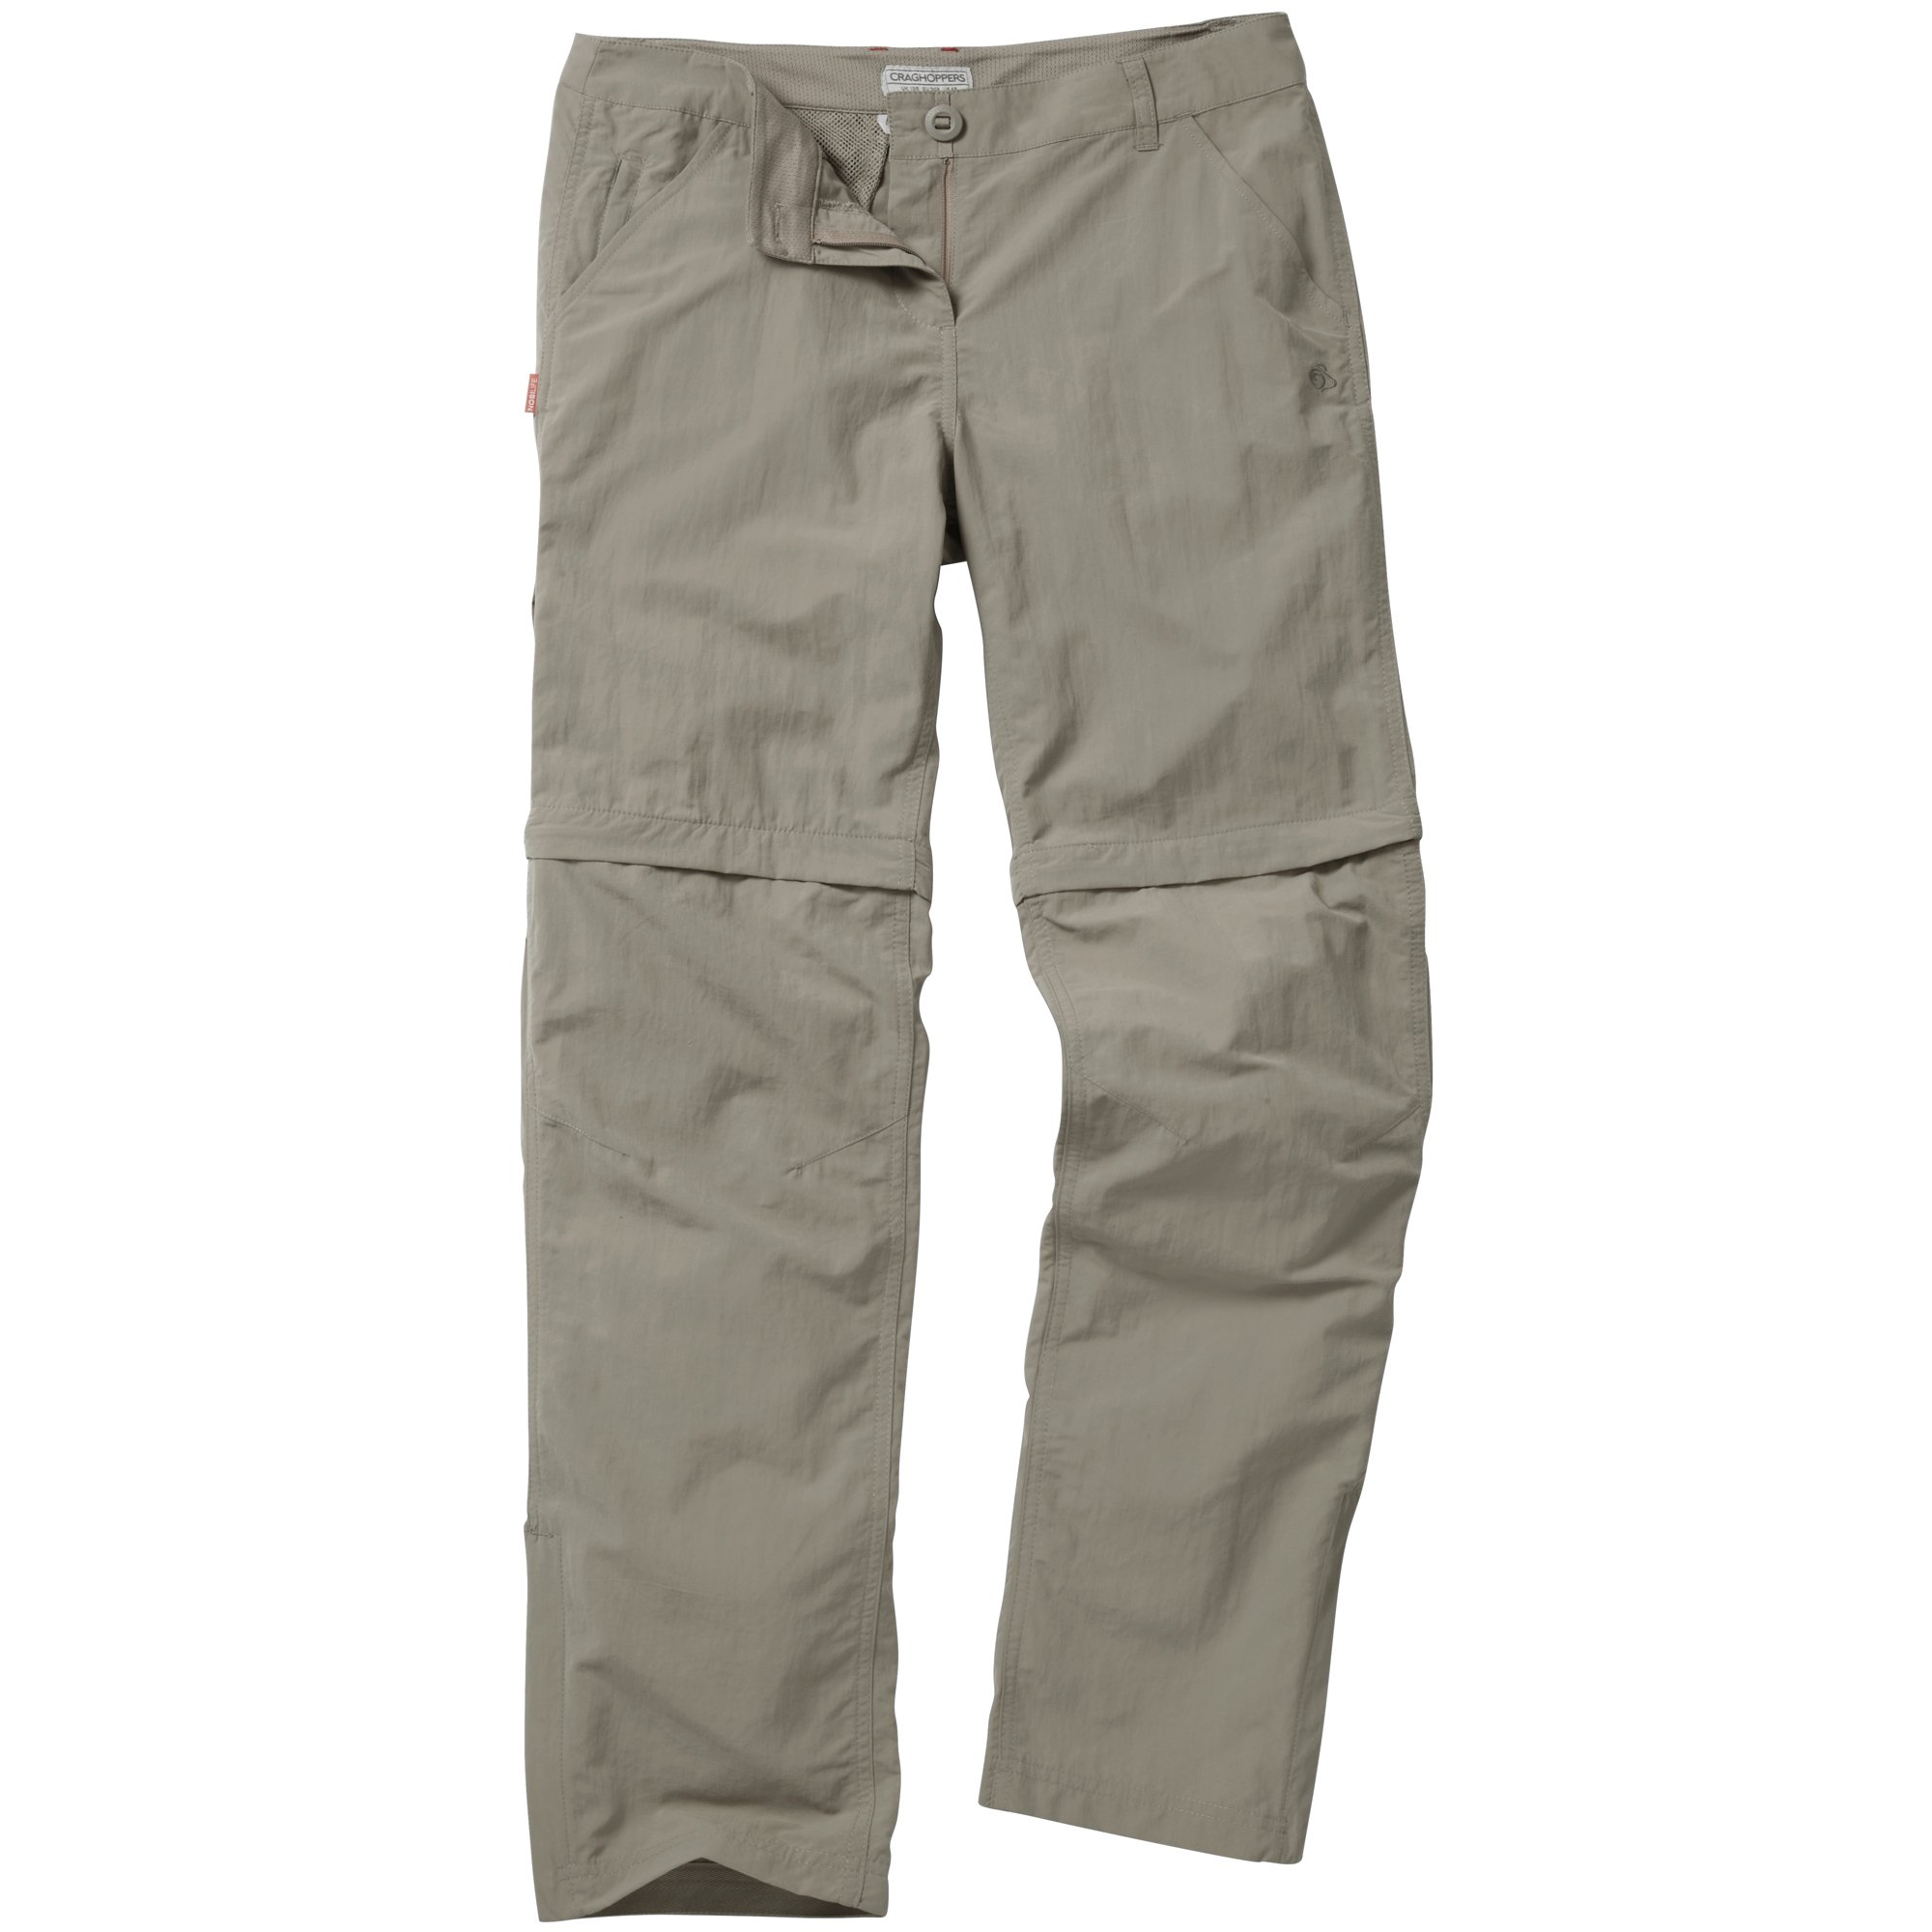 Craghoppers Womens/Ladies Nosilife Insect Repellent Zip Off Trousers/Pants (12R) (Platinum)